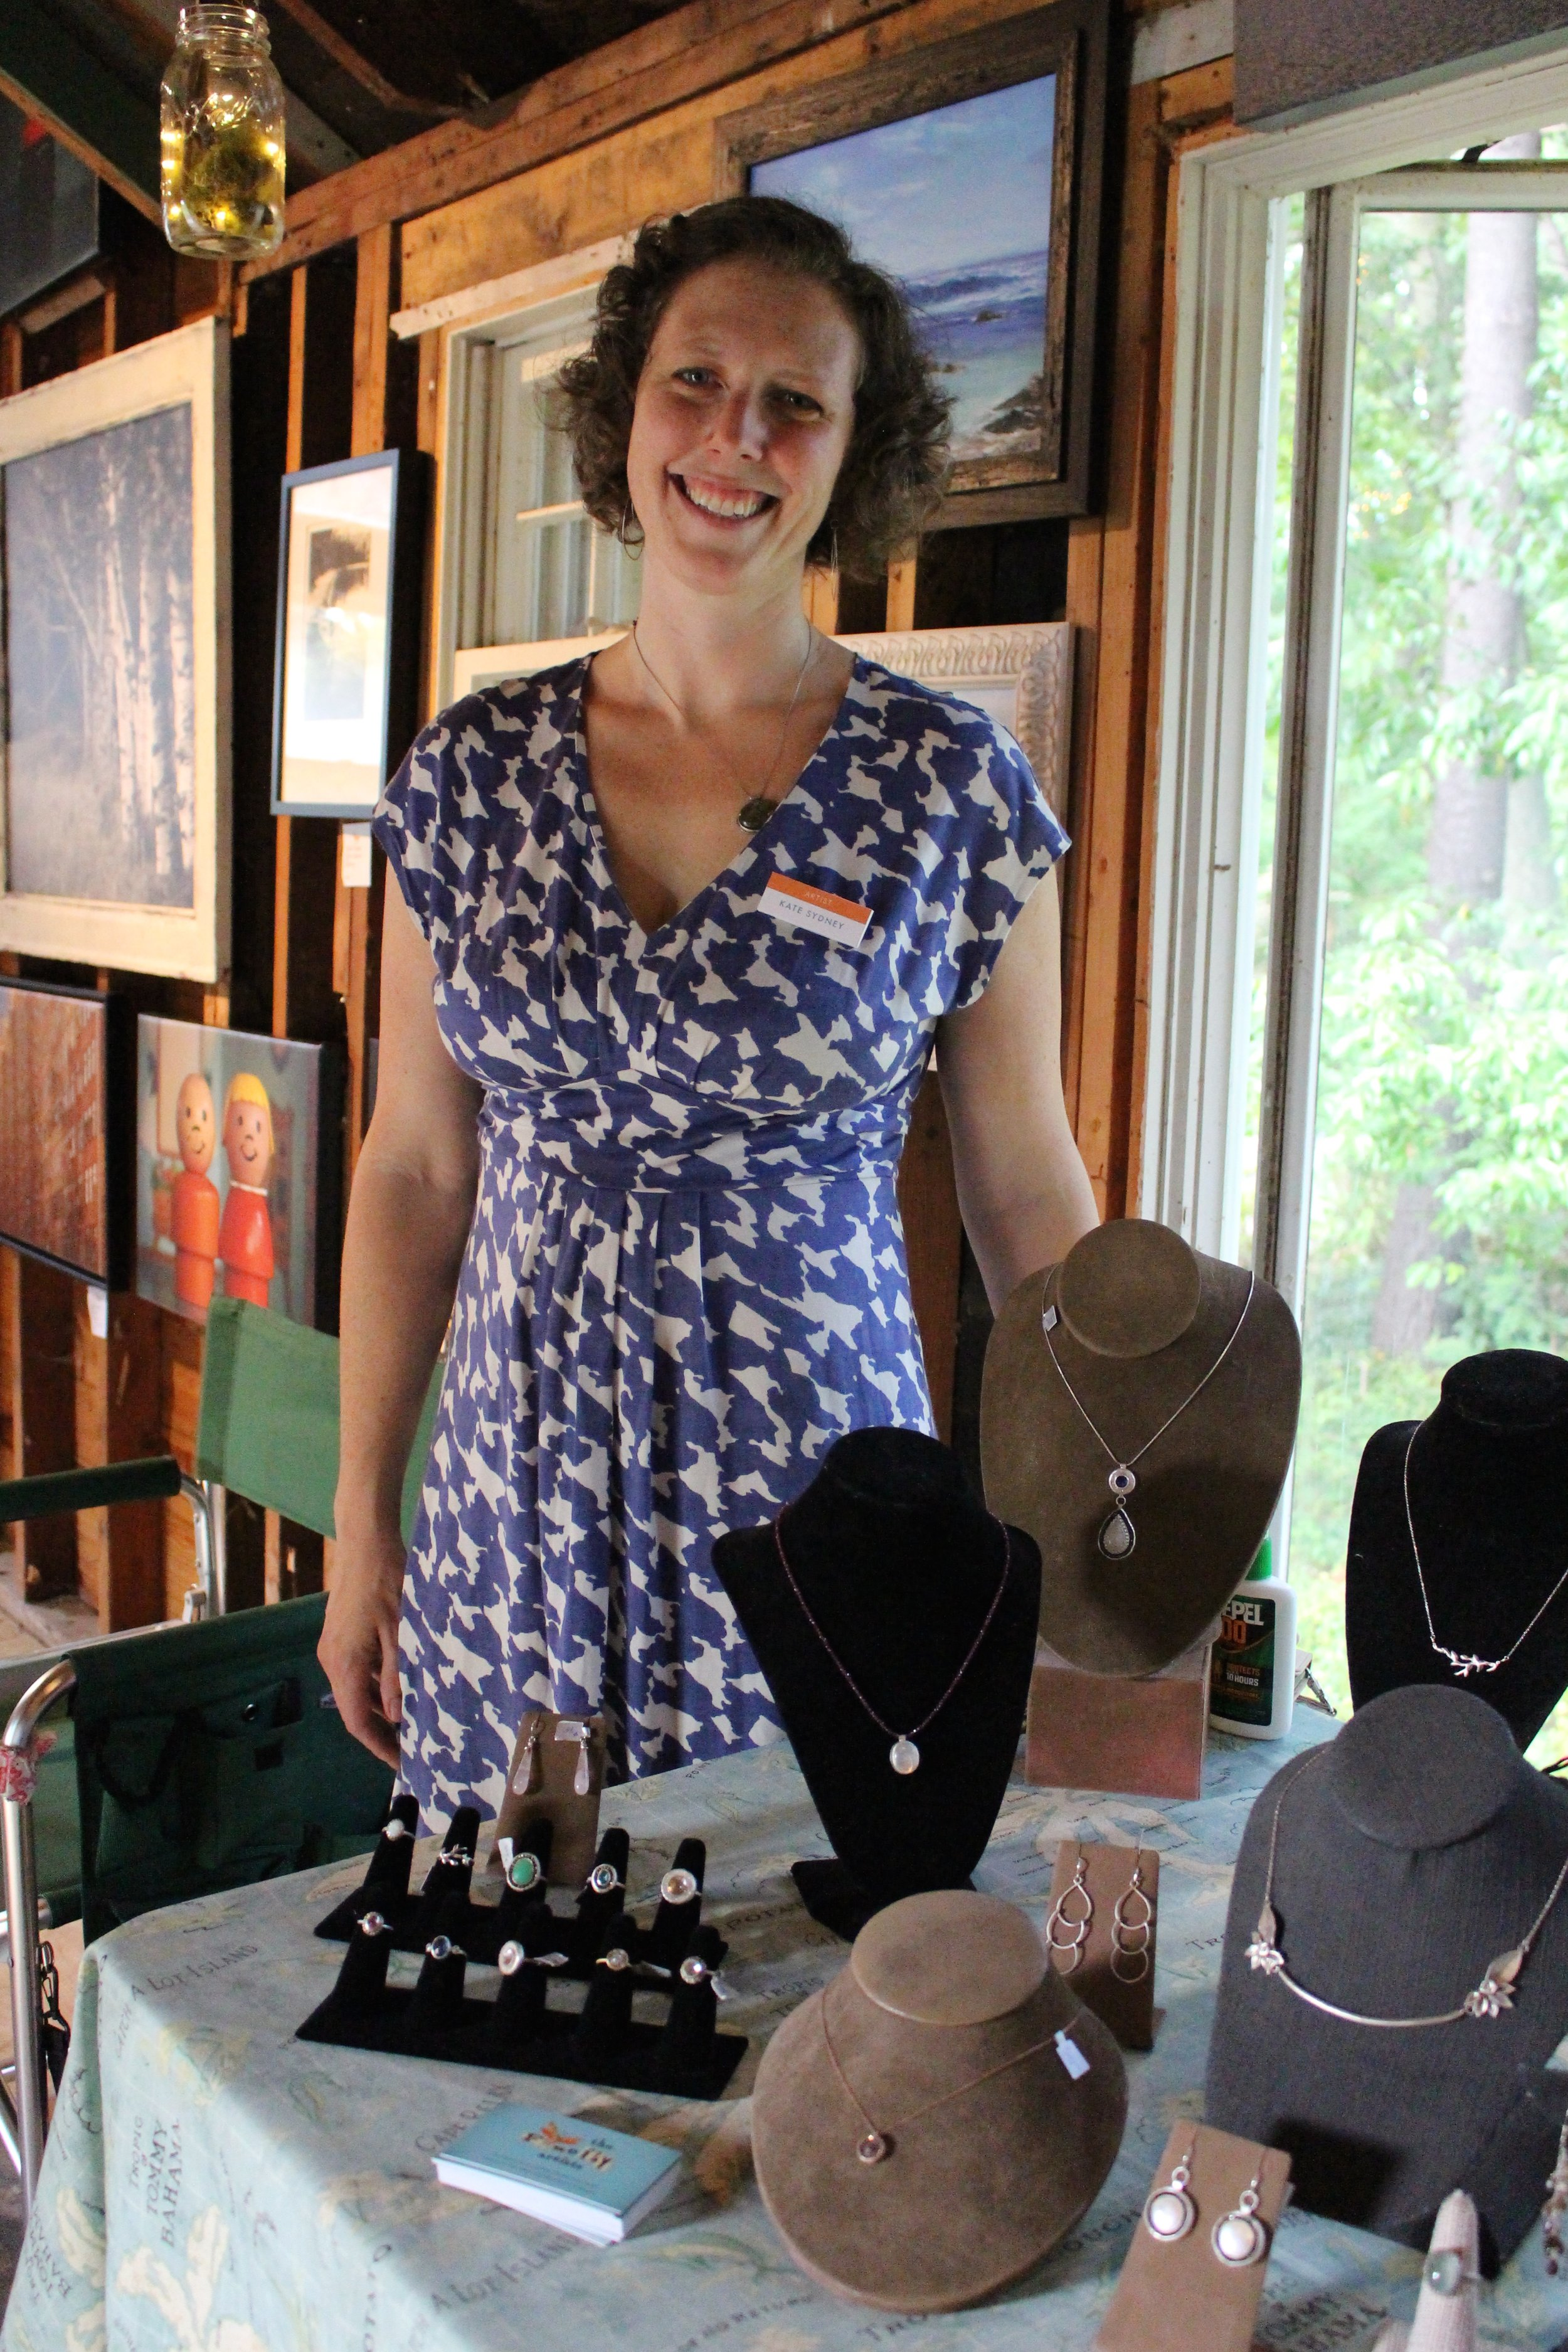 Long Islander News photos/Janee Law  Kate Gilmore, co-founder and managing partner of Firefly Artists, stands next to her table of jewelry at the Firefly Artists' pop-up gallery event that was hosted in Eatons Neck over the weekend.